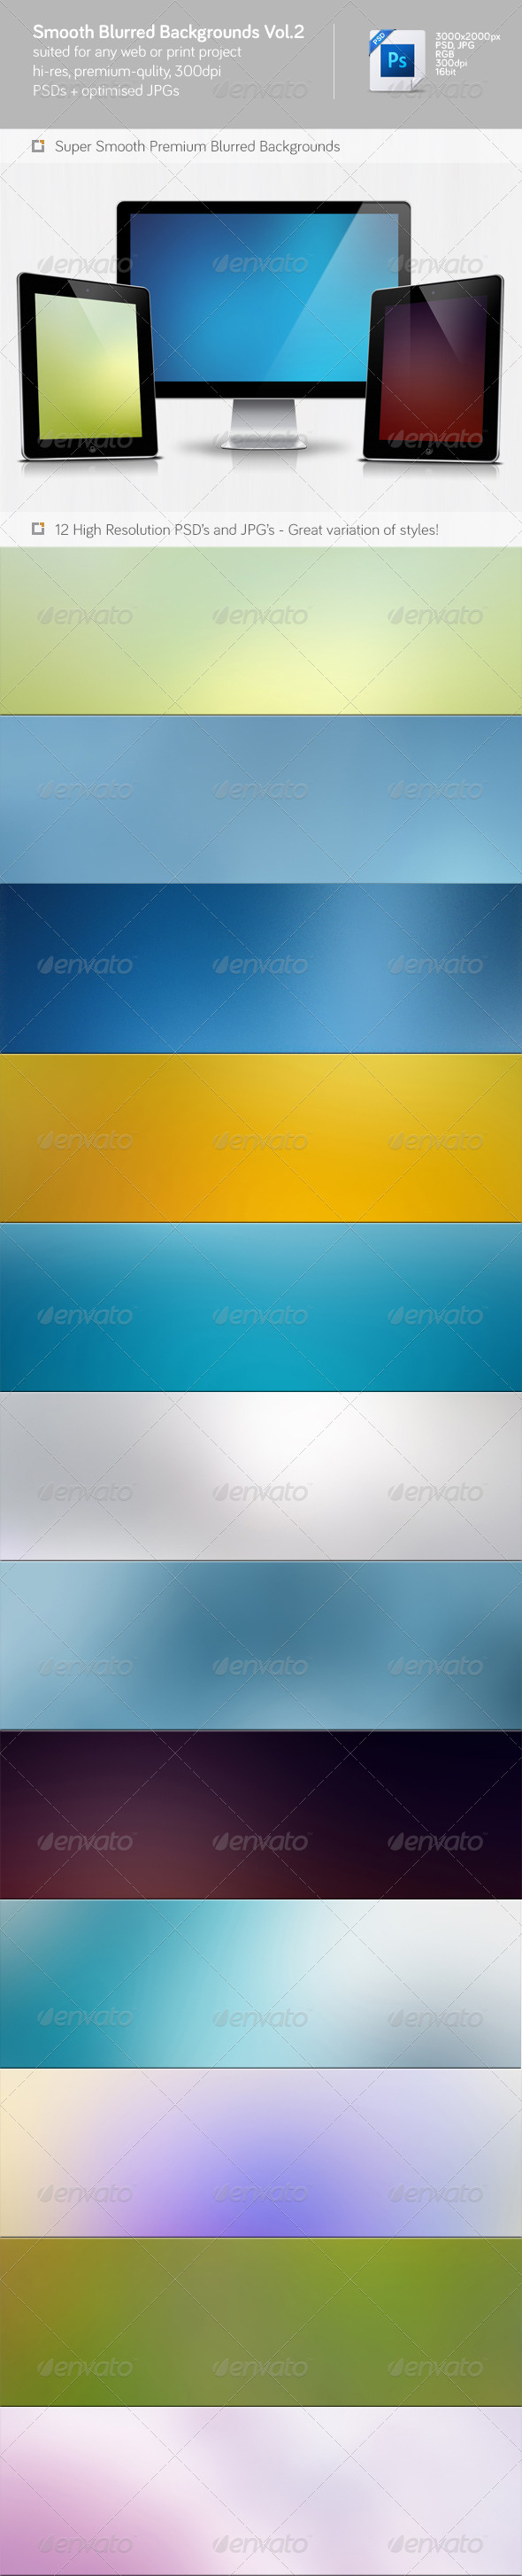 GraphicRiver Smooth Blurred Backgrounds Vol.2 5975091